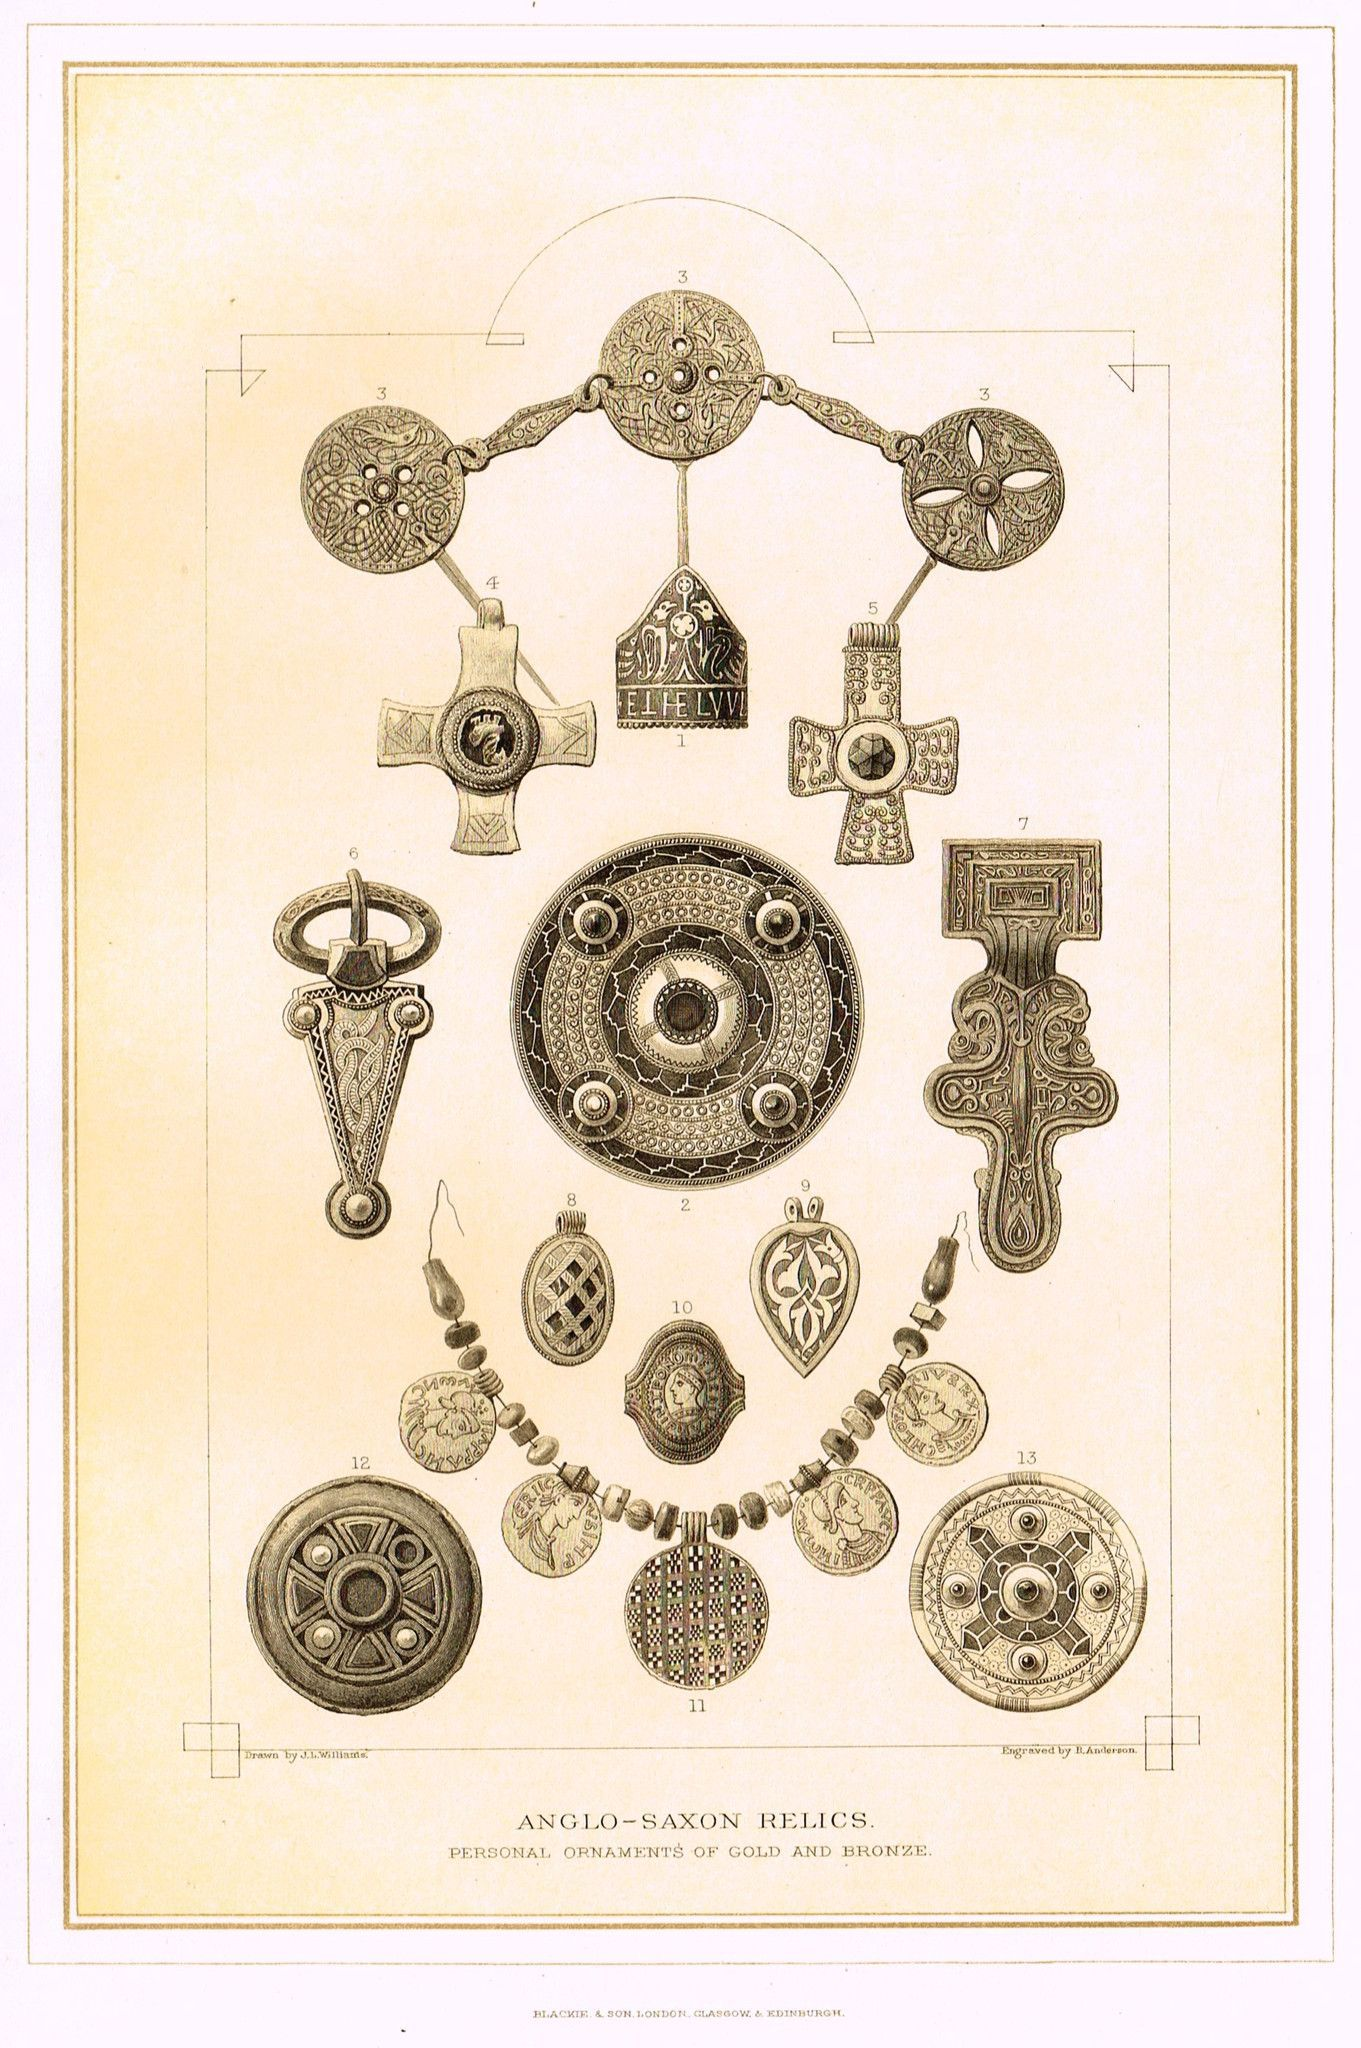 """Archer's Royal Antiquities - """"ANGLO-SAXON RELICS"""" - Tinted Lithograph - 1880                                                                                                                                                                                 More"""